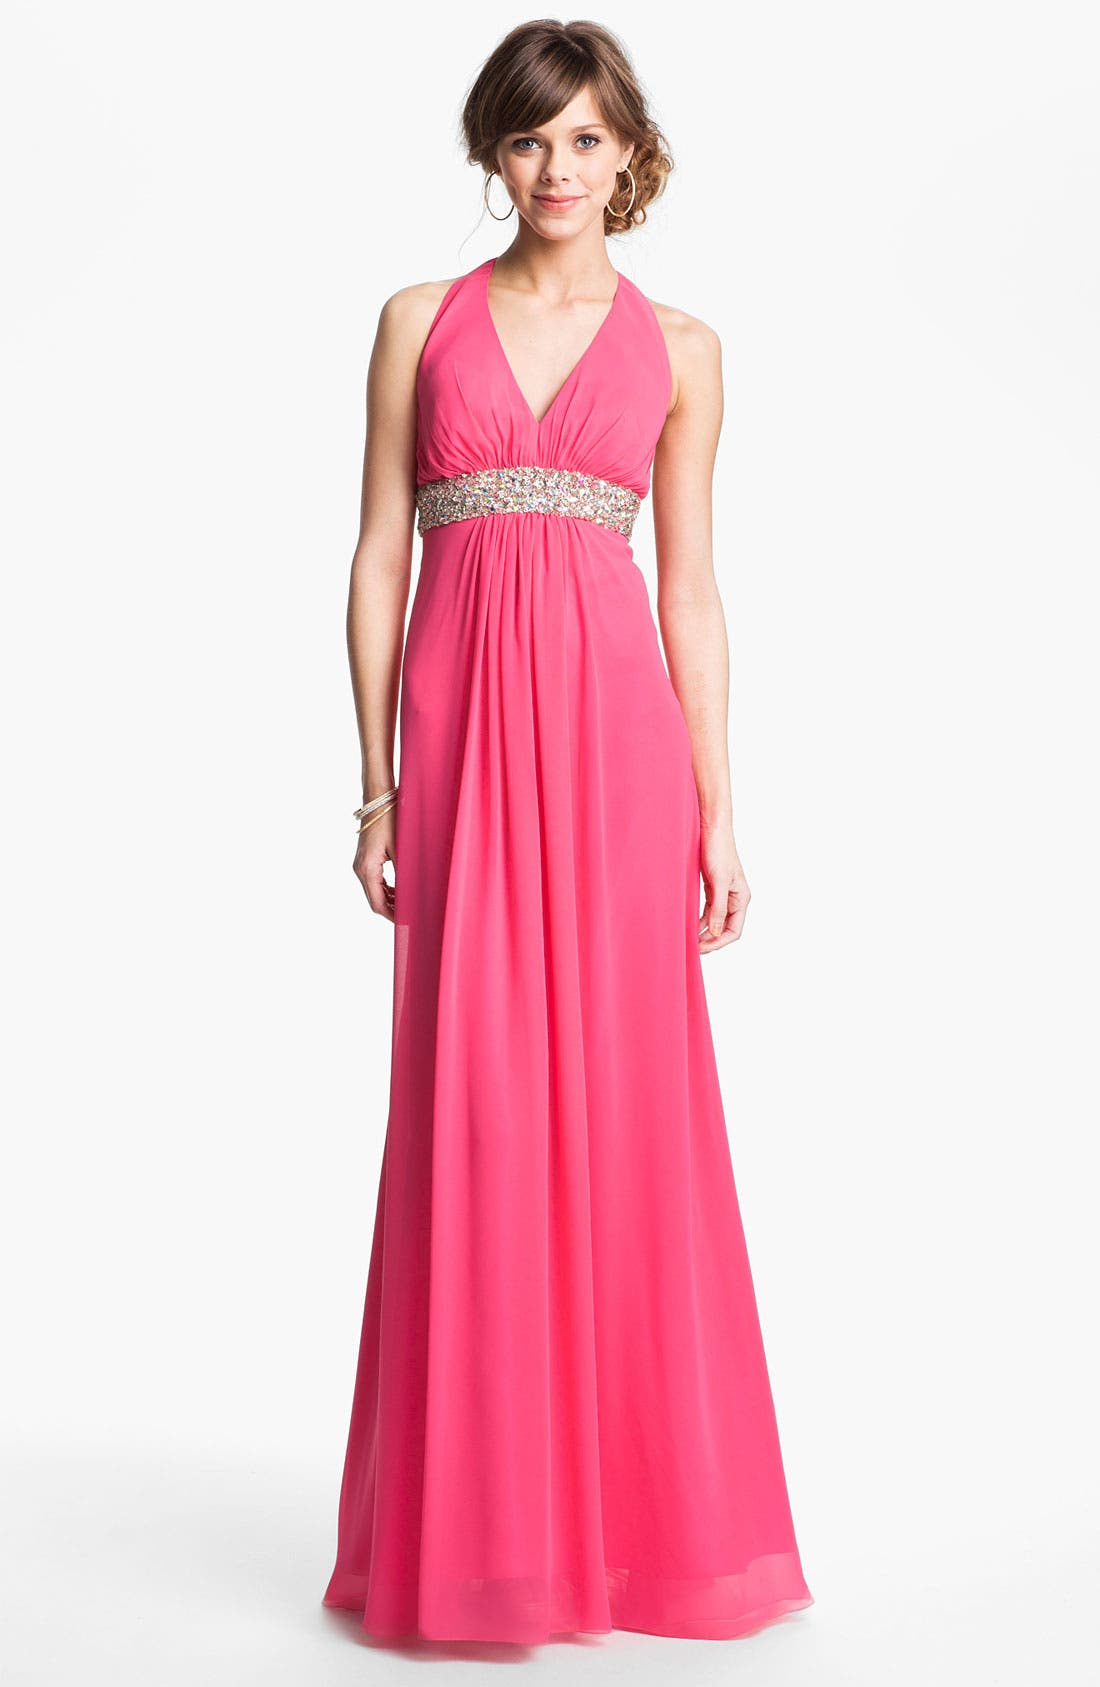 Alternate Image 1 Selected - Faviana Embellished Chiffon Halter Gown (Online Exclusive)